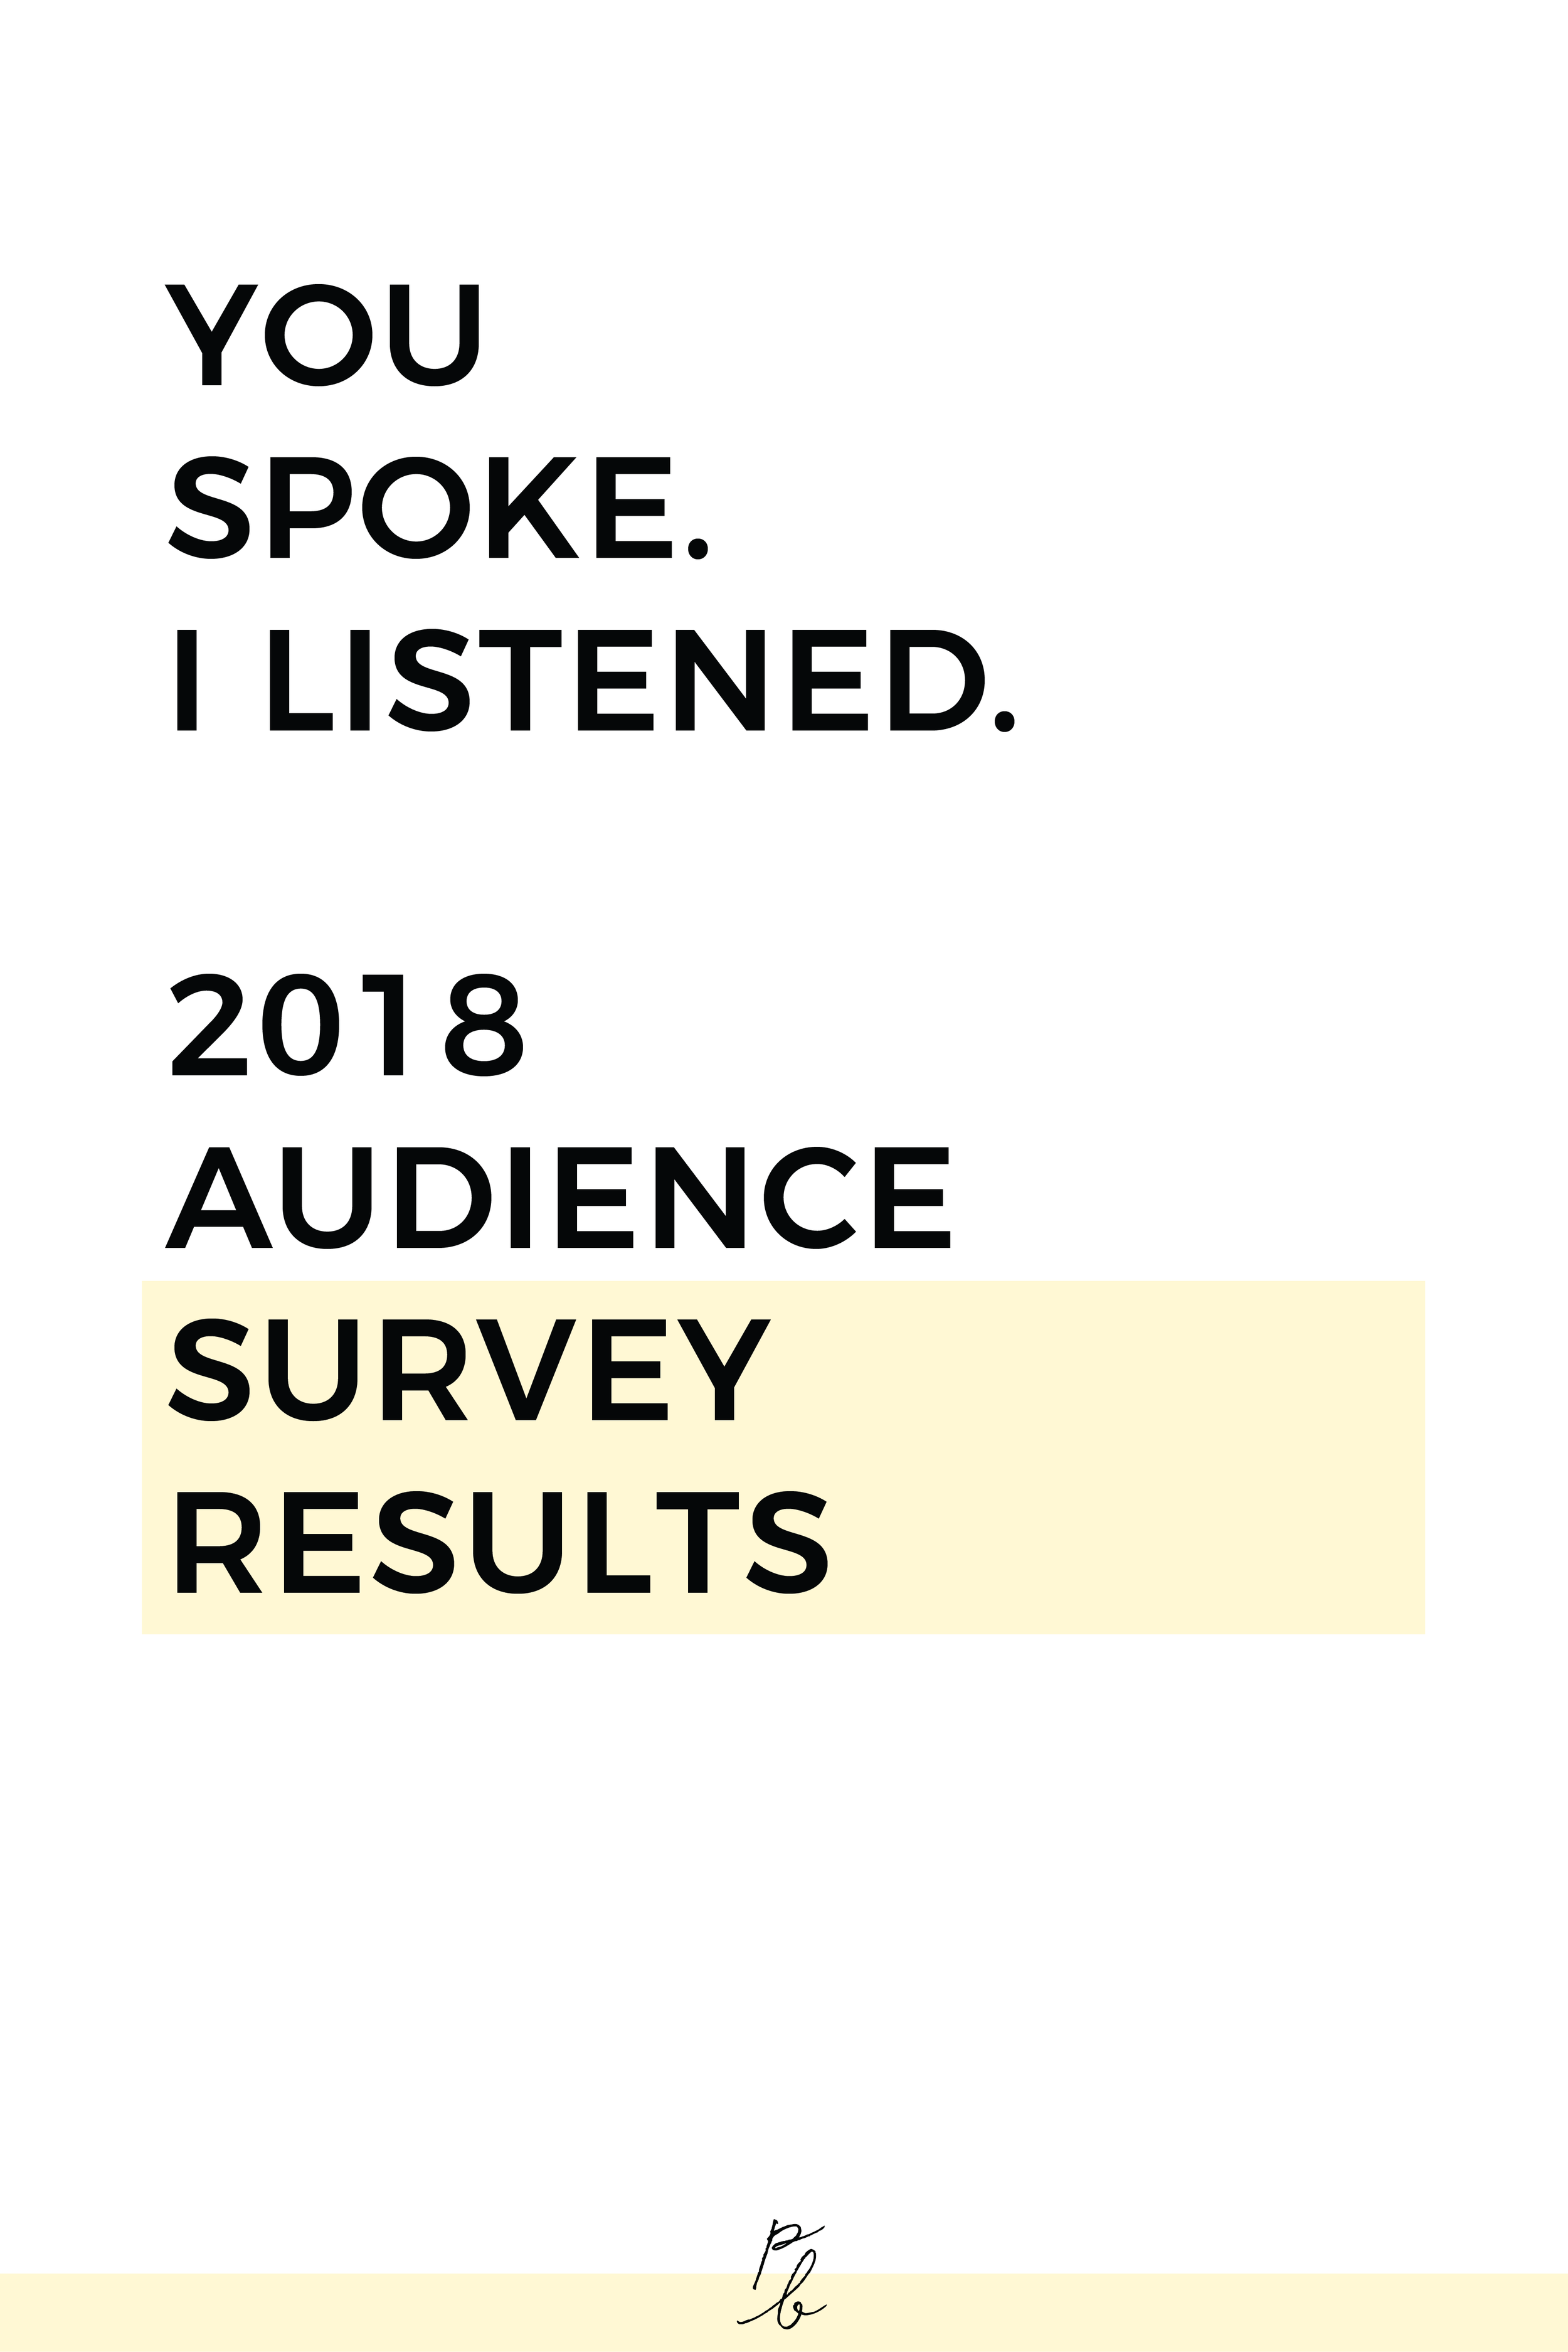 you spoke i listened. 2018 audience survey results.png